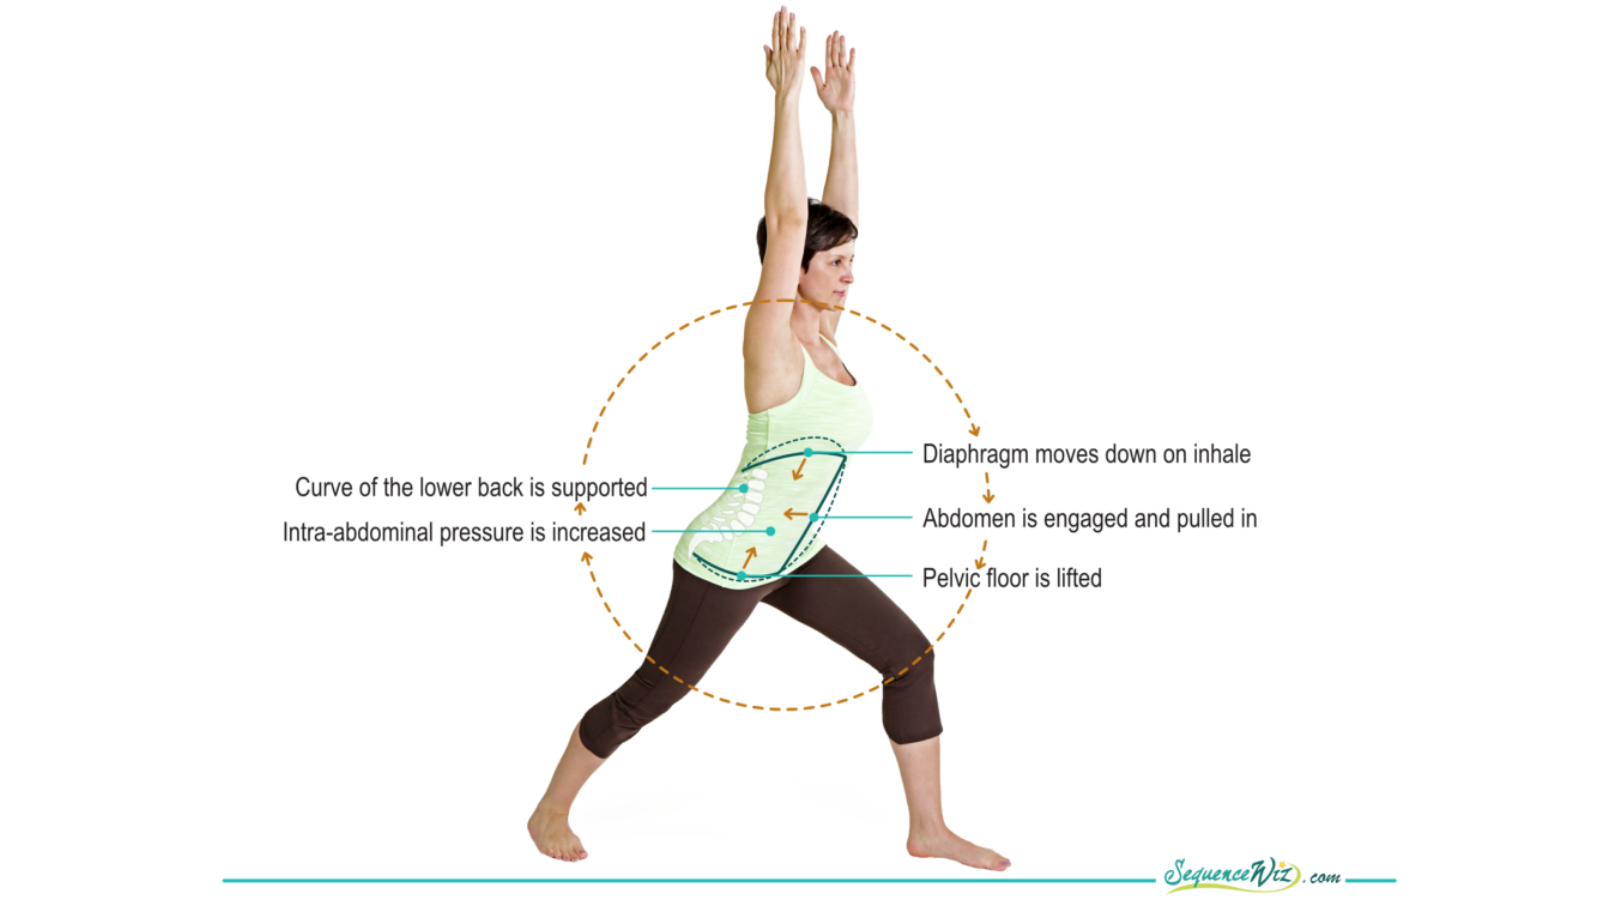 The benefits of practicing yoga for diaphragm health in Warrior II Pose